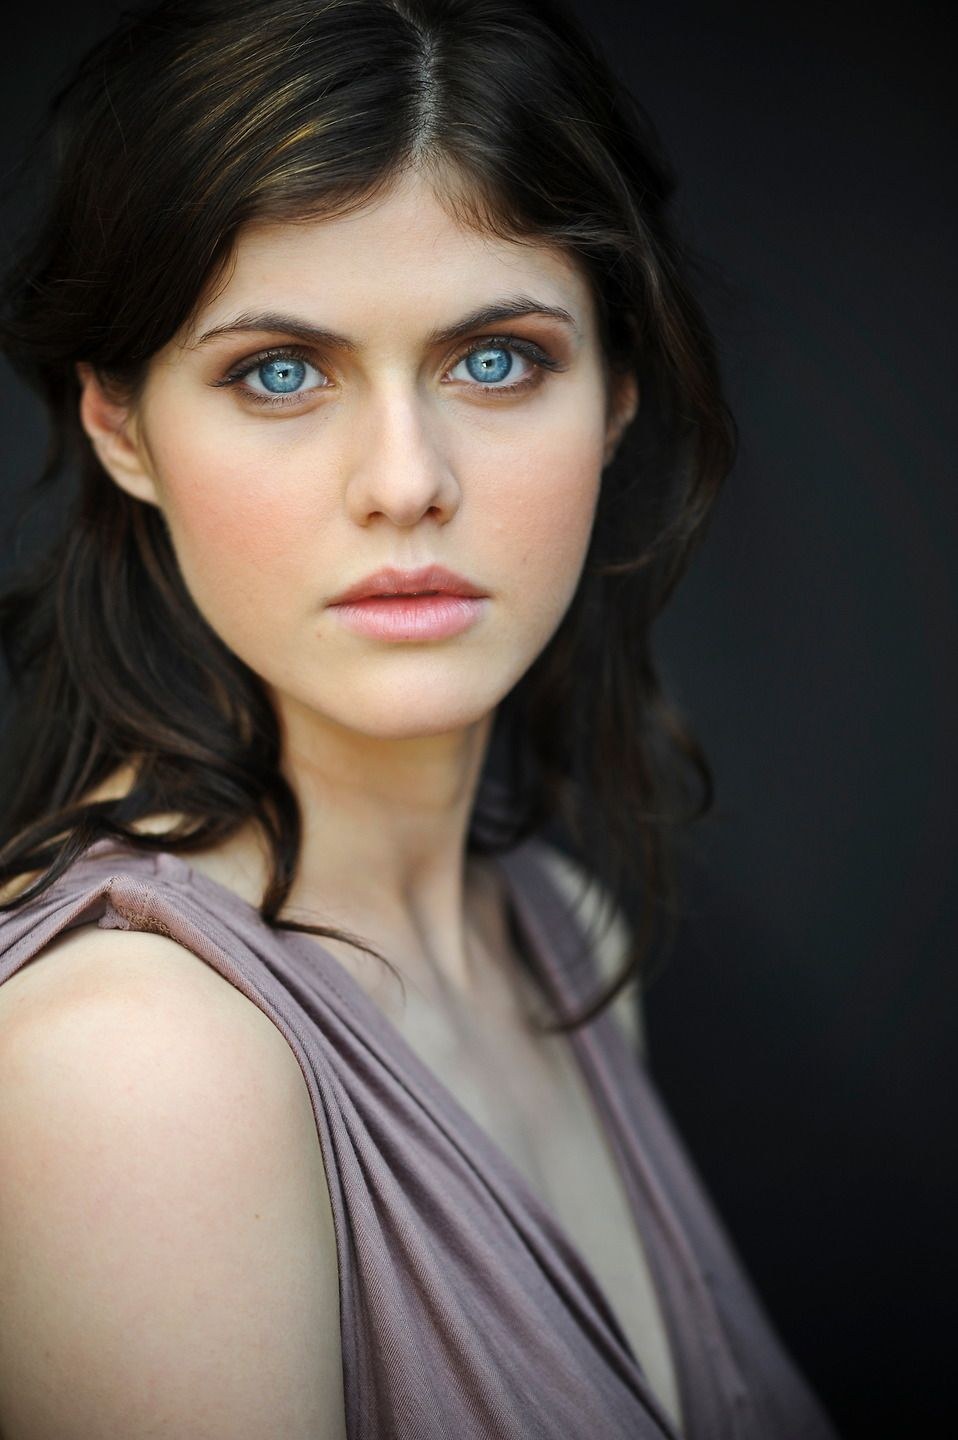 Alexandra Daddario True Detective Girl Crush Her Eyes And Hair Color Are Epically Beautiful